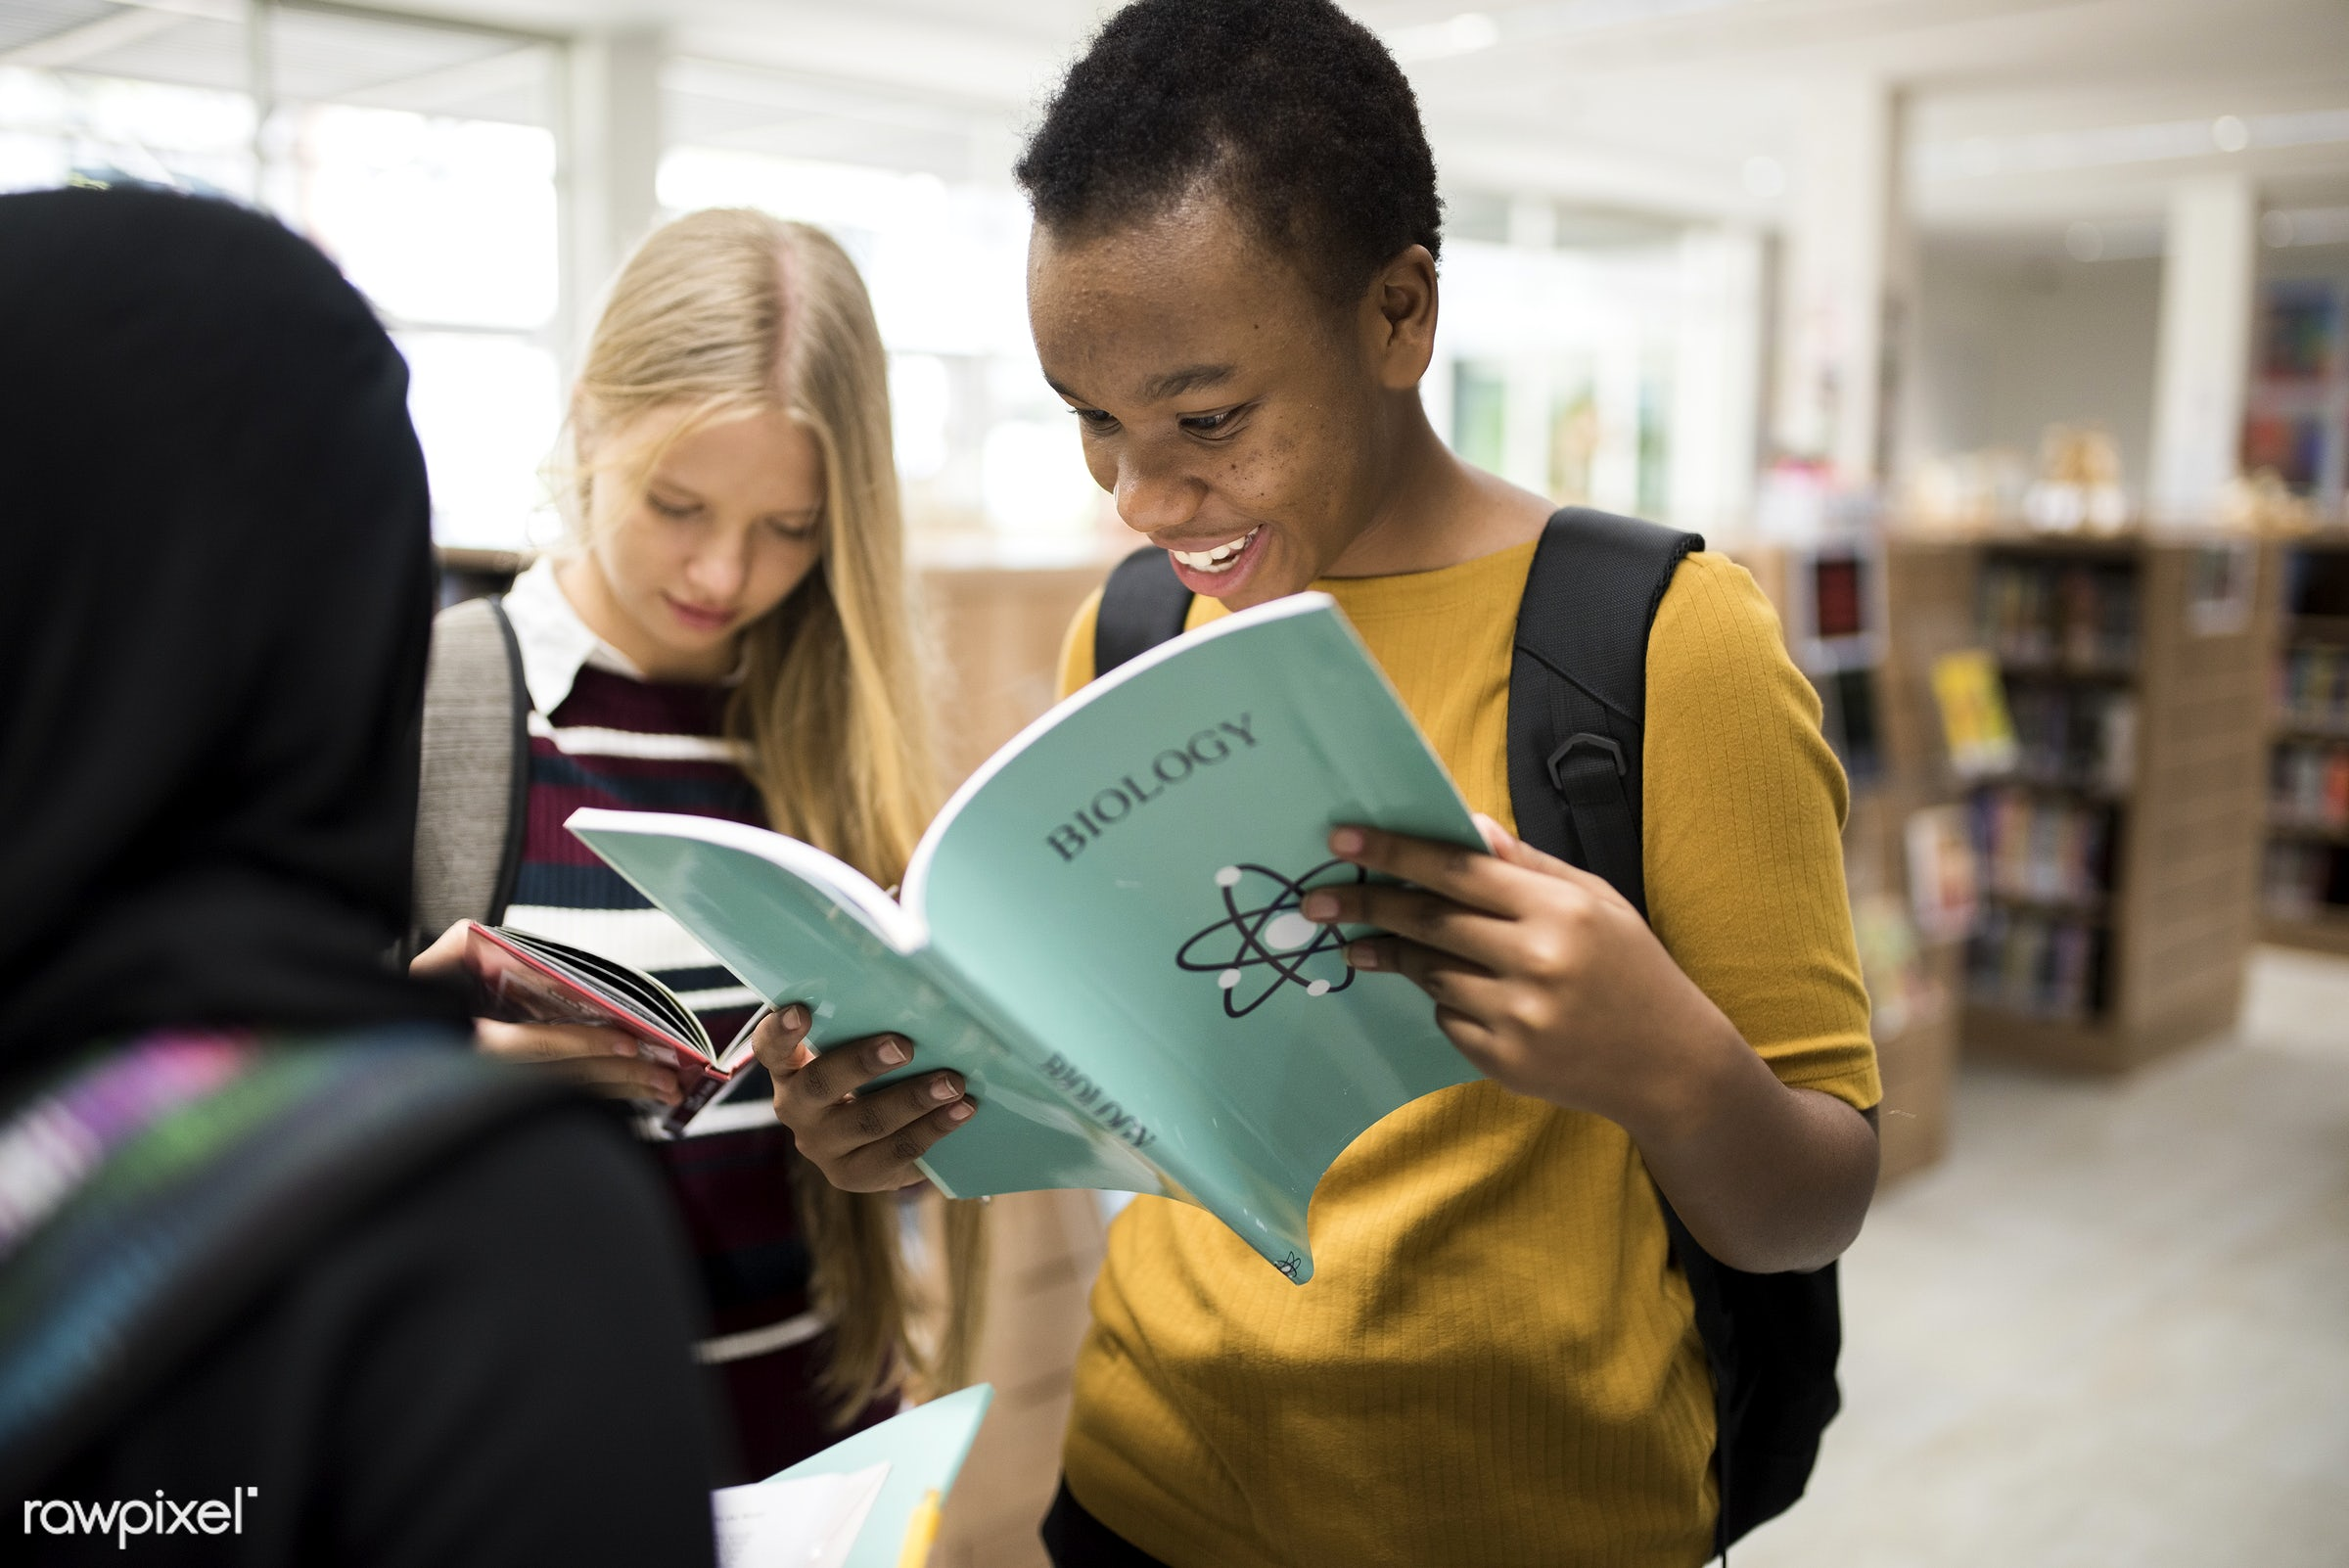 reading, holding, study, together, friends, young adult, hands, bookshelves, books, diversity, students, high school, teen,...